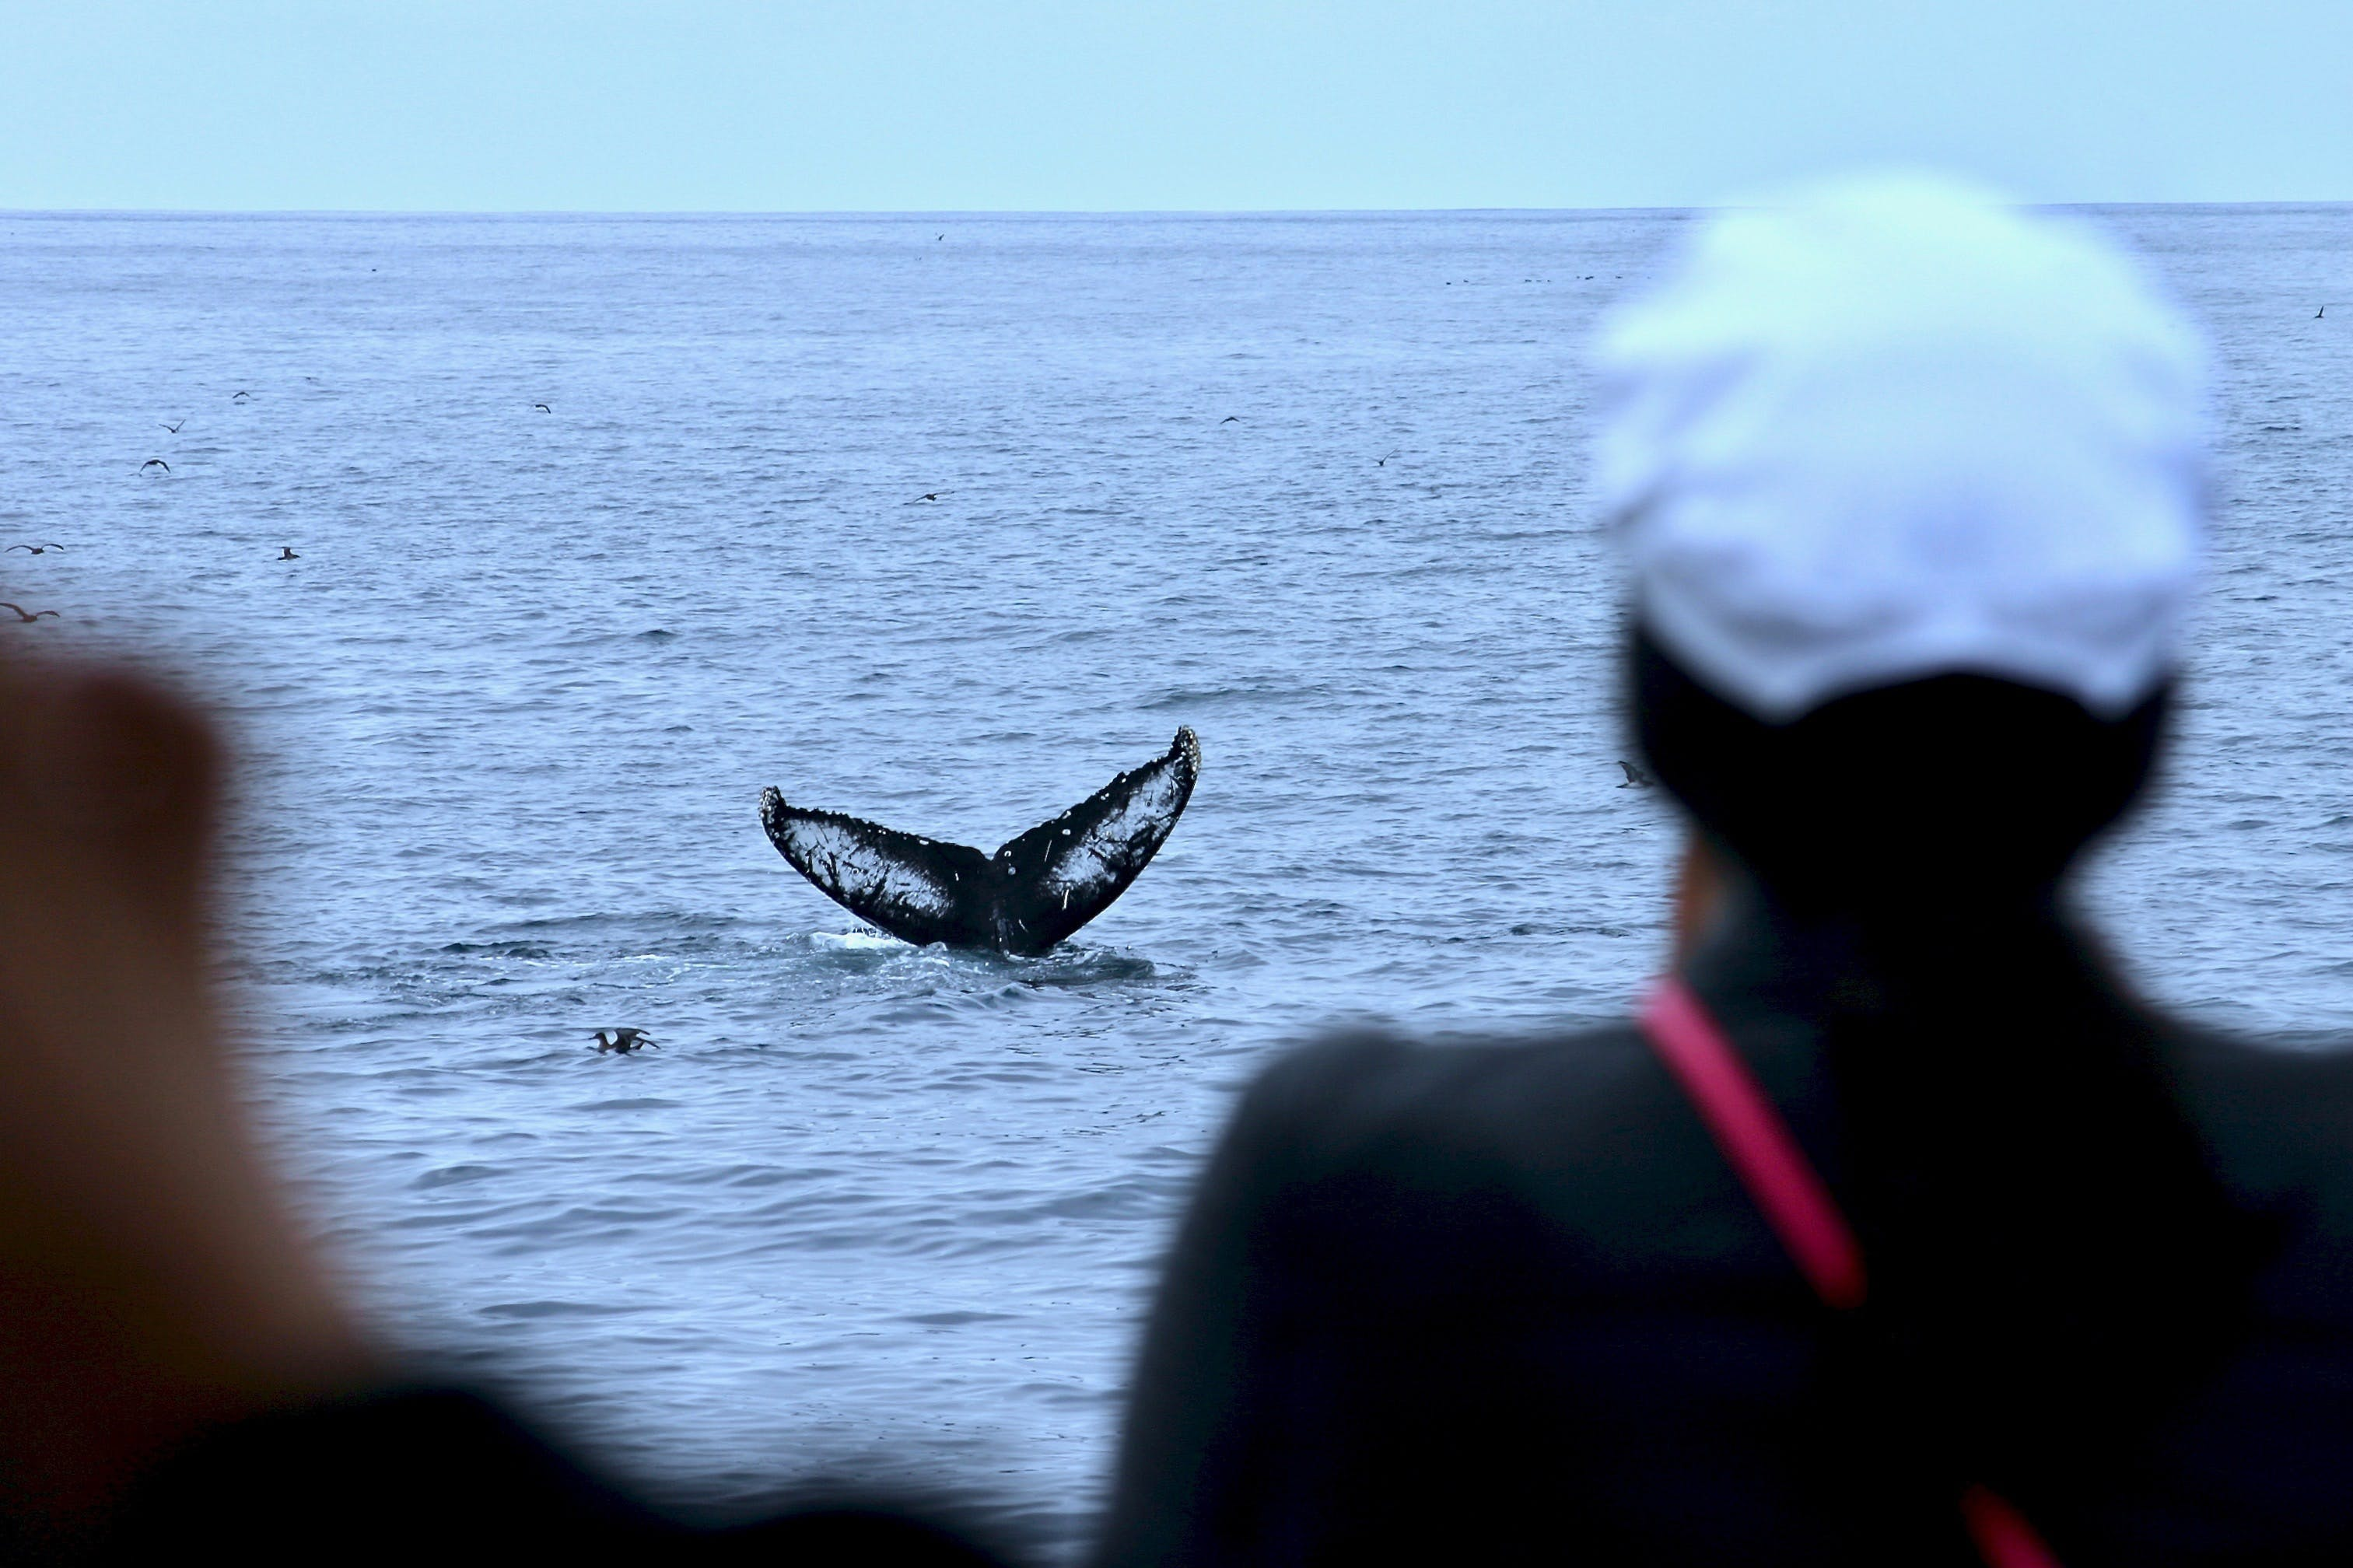 The tail of a whale appears out of the distance from the water.